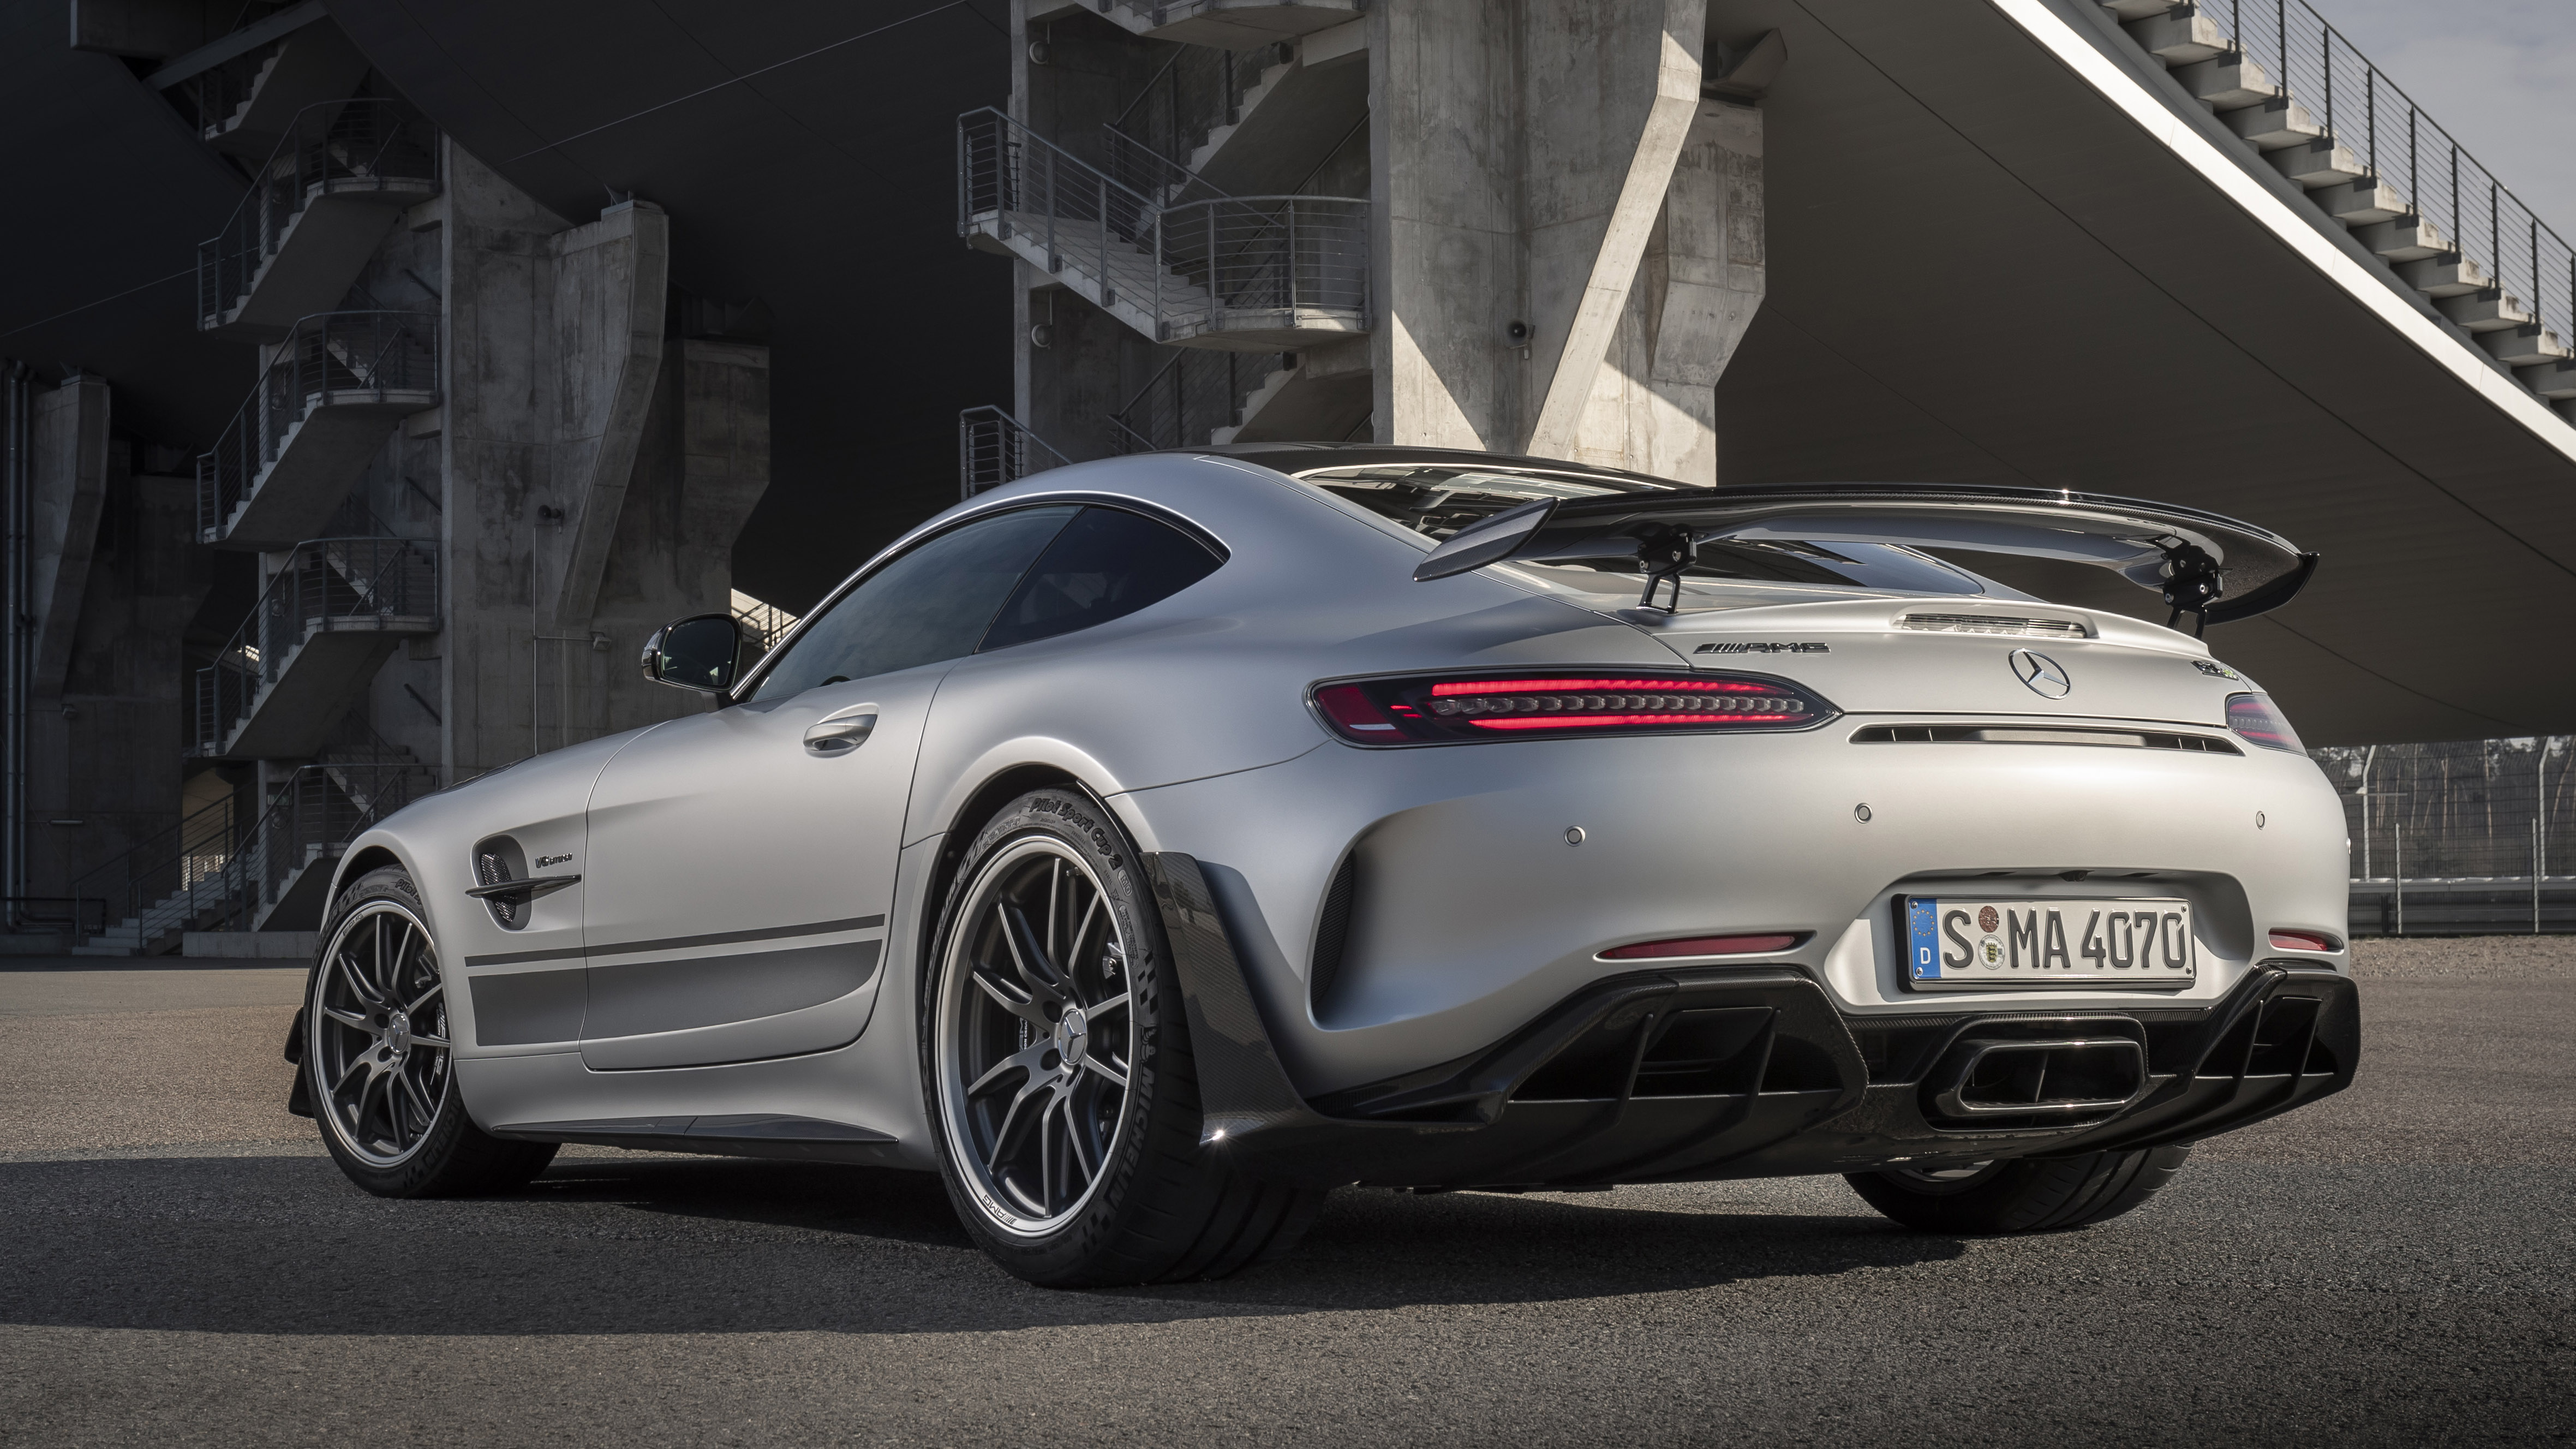 2020 Mercedes-AMG GT R Pro pricing announced | Autoblog